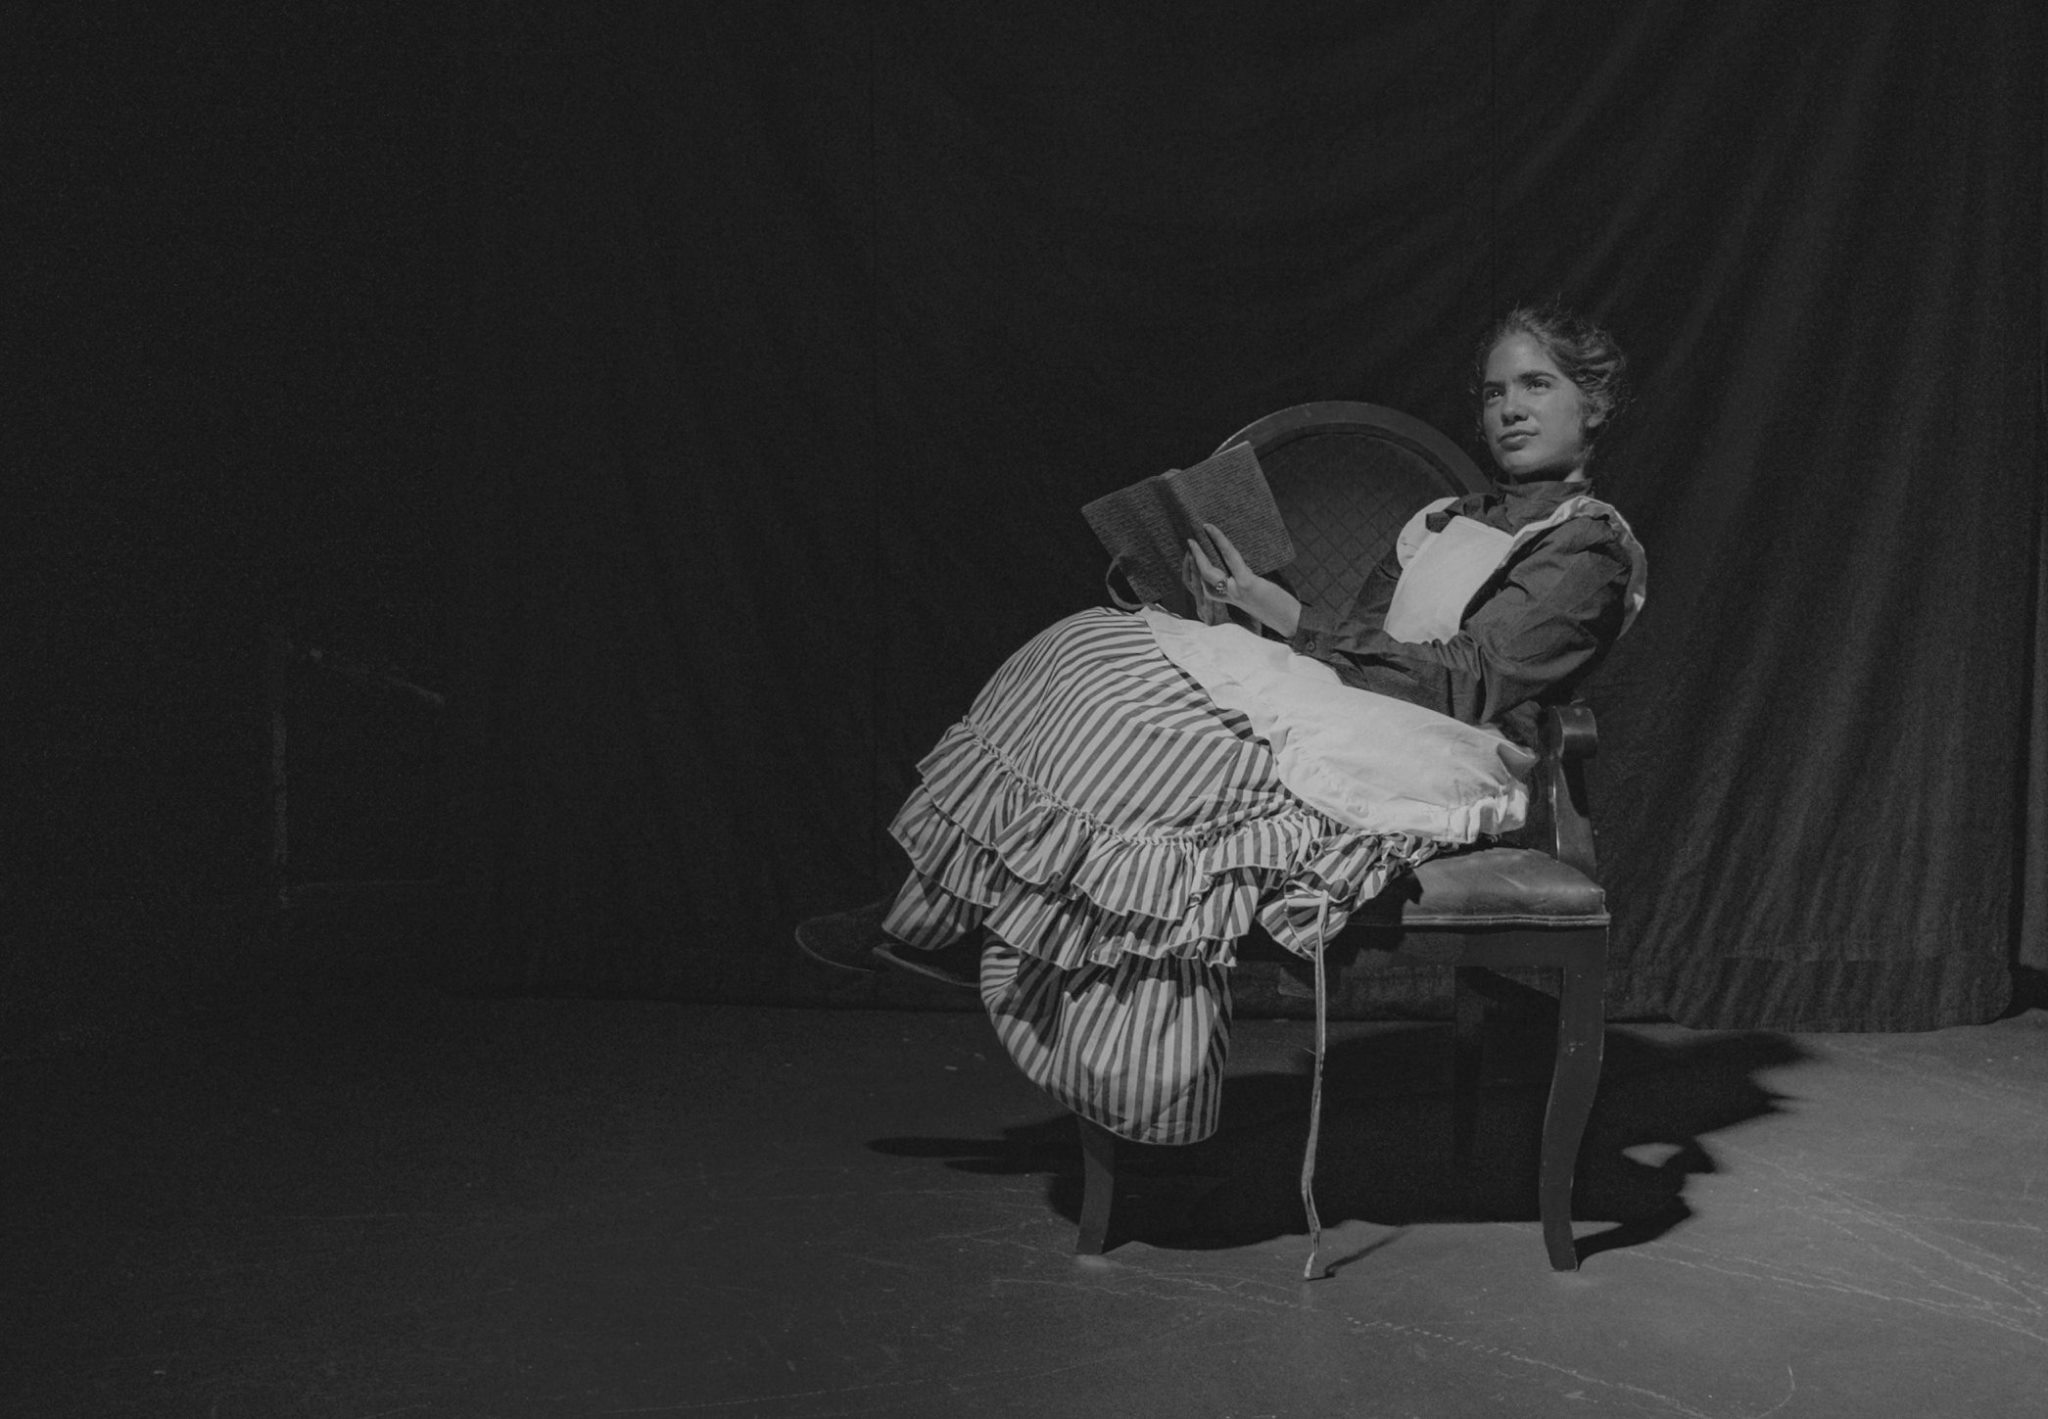 uploads/production_images/the-moors-gaslight-baker-ursula-rogers-2019/moors_gbt_05_bw.jpg